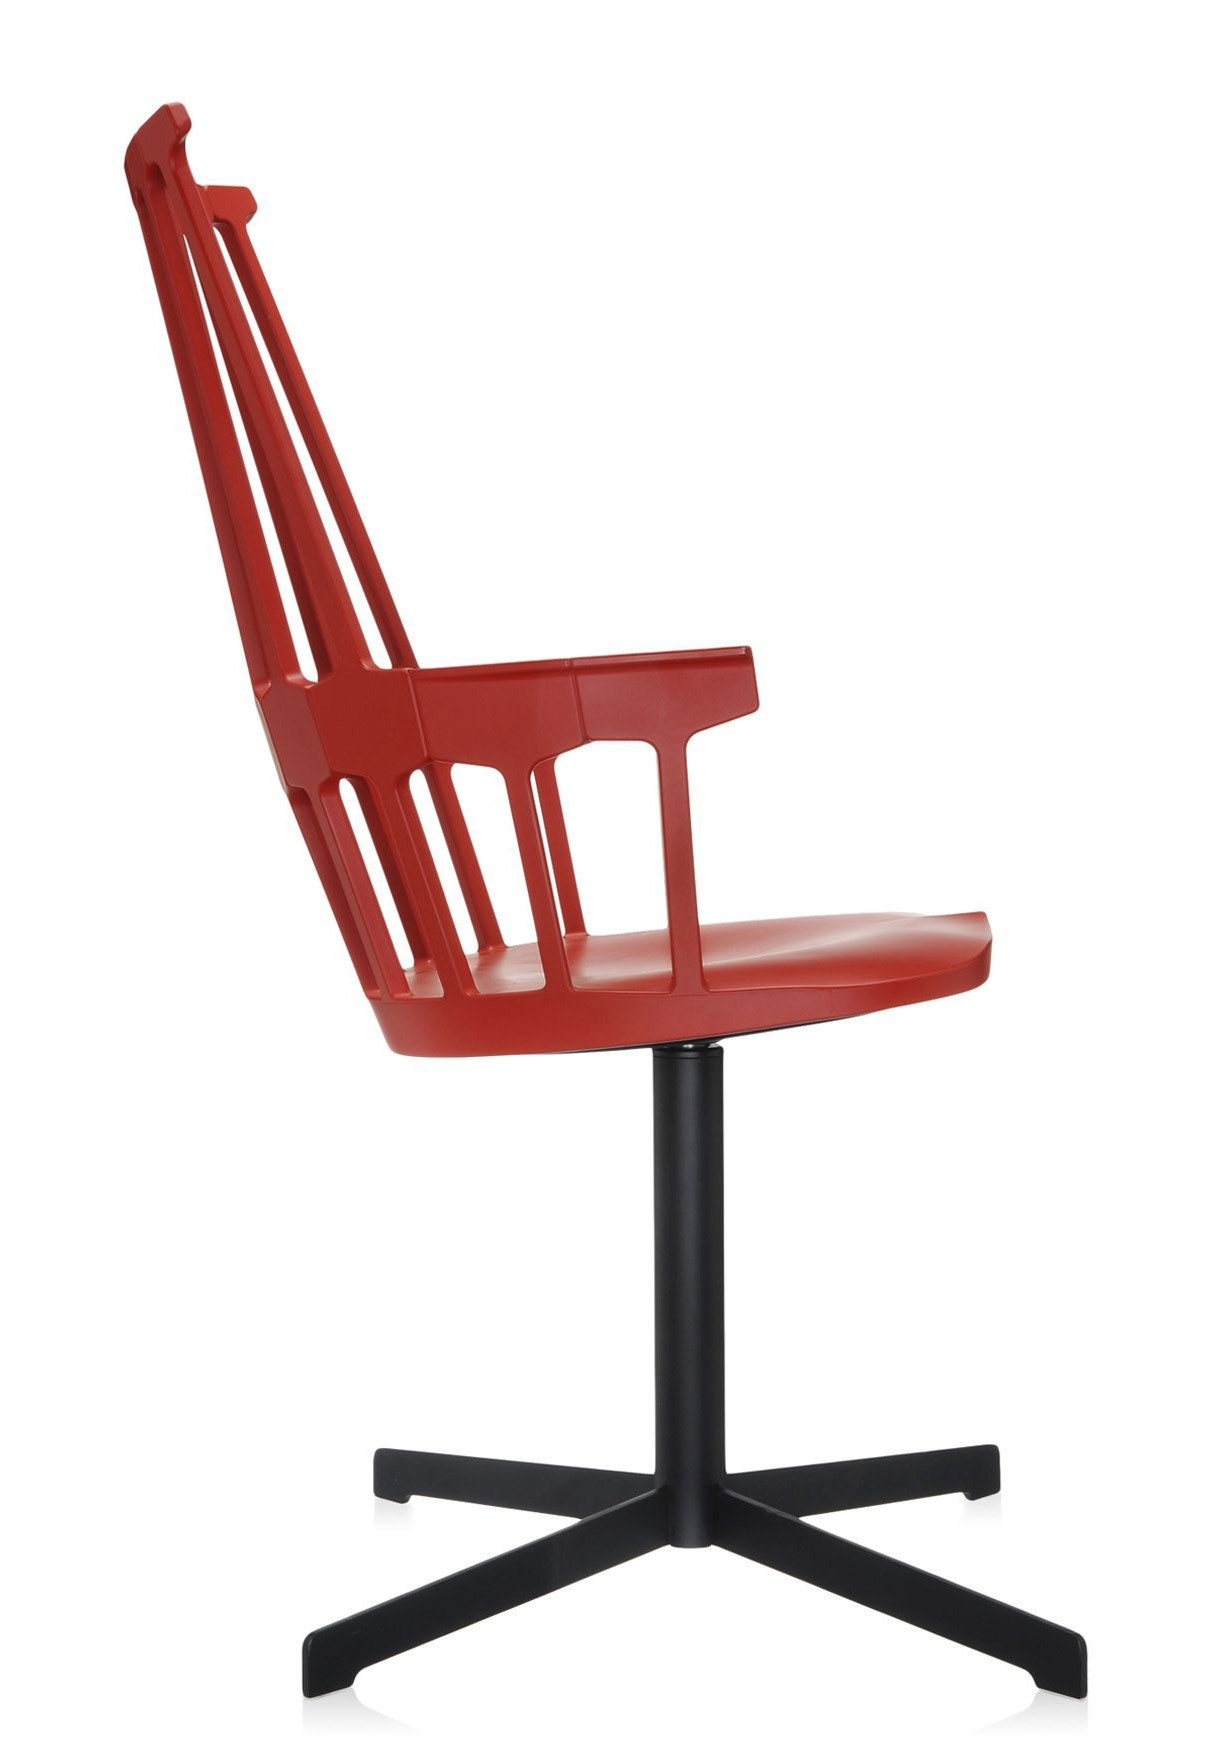 Wondrous Kartell Comback Swivel Chair Priced Each Sold In Sold In Sets Of 2 Beatyapartments Chair Design Images Beatyapartmentscom